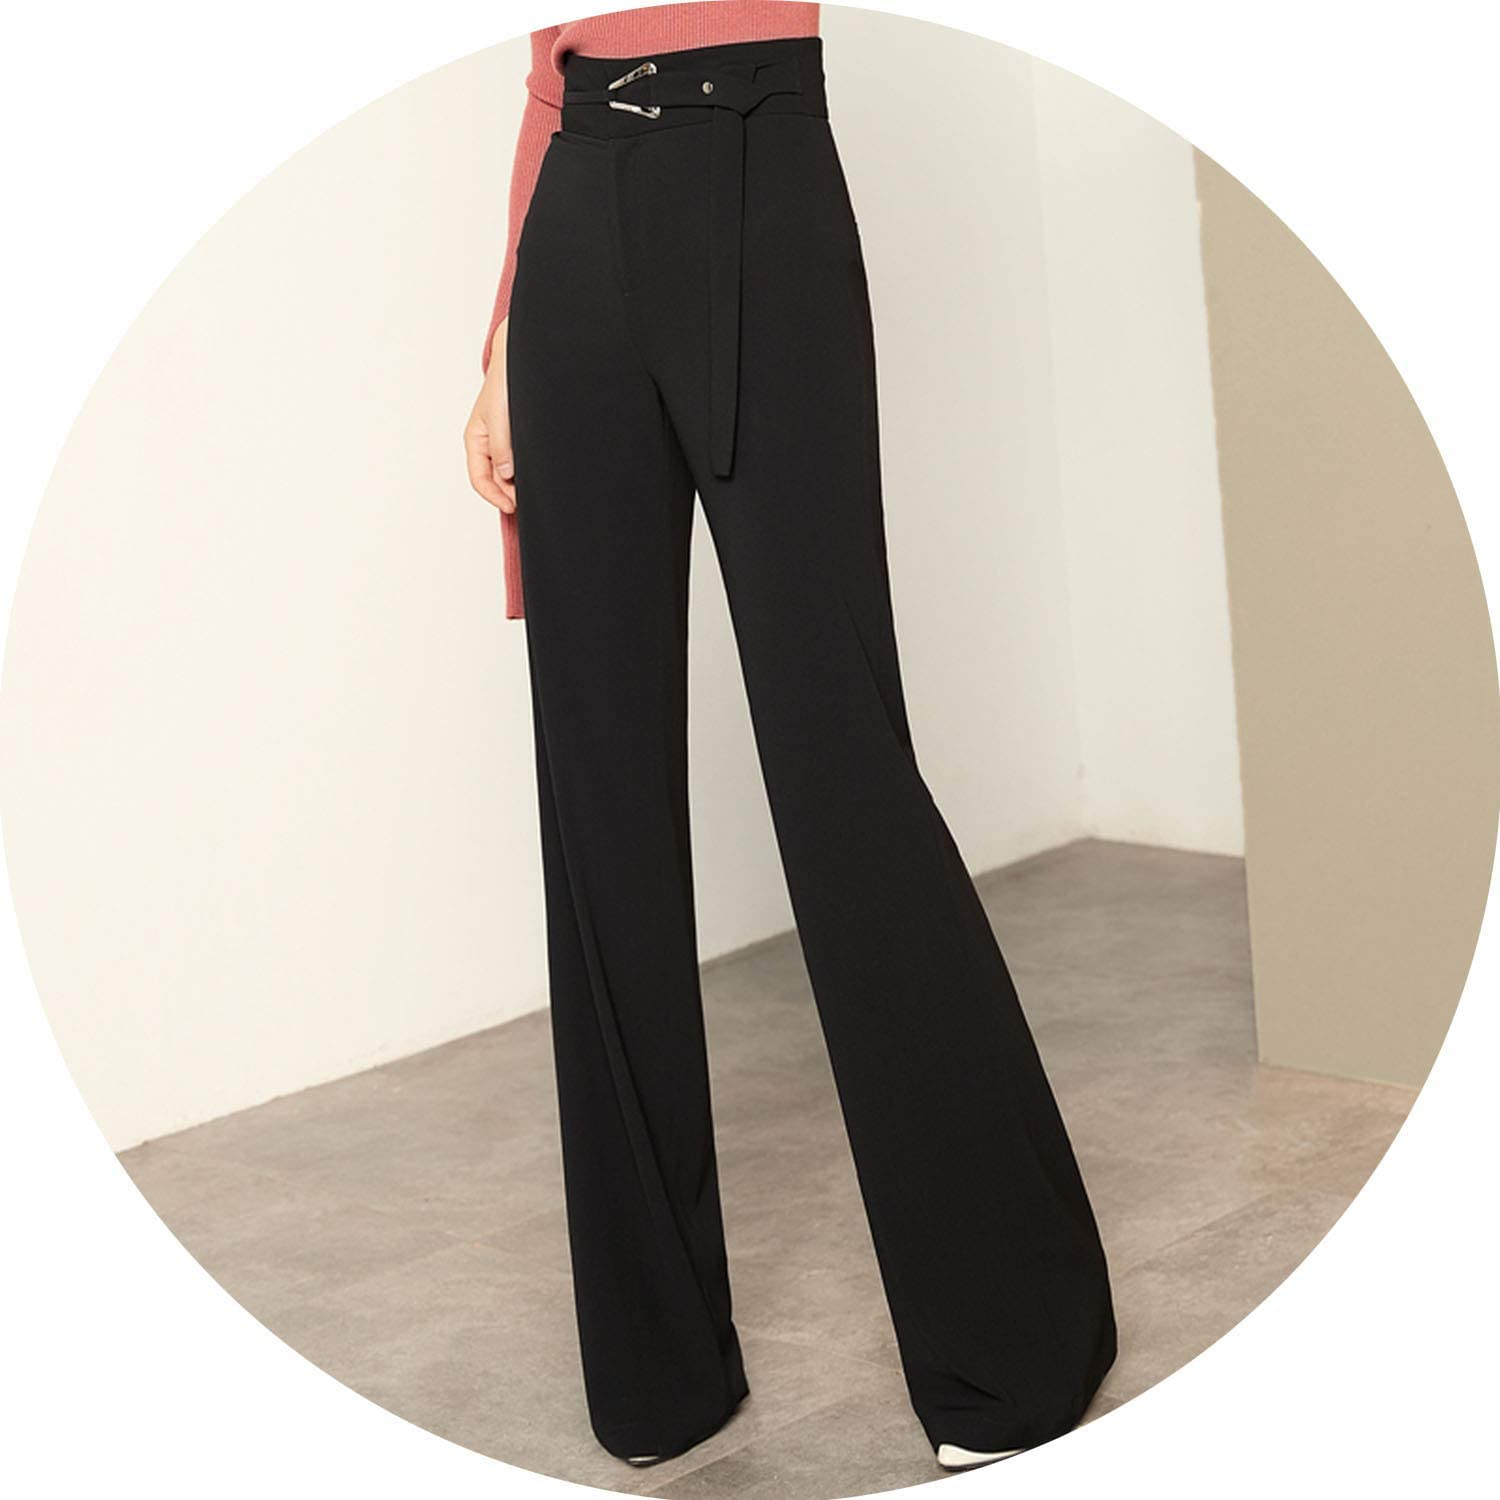 Can't be satisfied High Waist Women's Black Long Trousers Office Lady Loose Straight Pants Black Woman Wide Pants